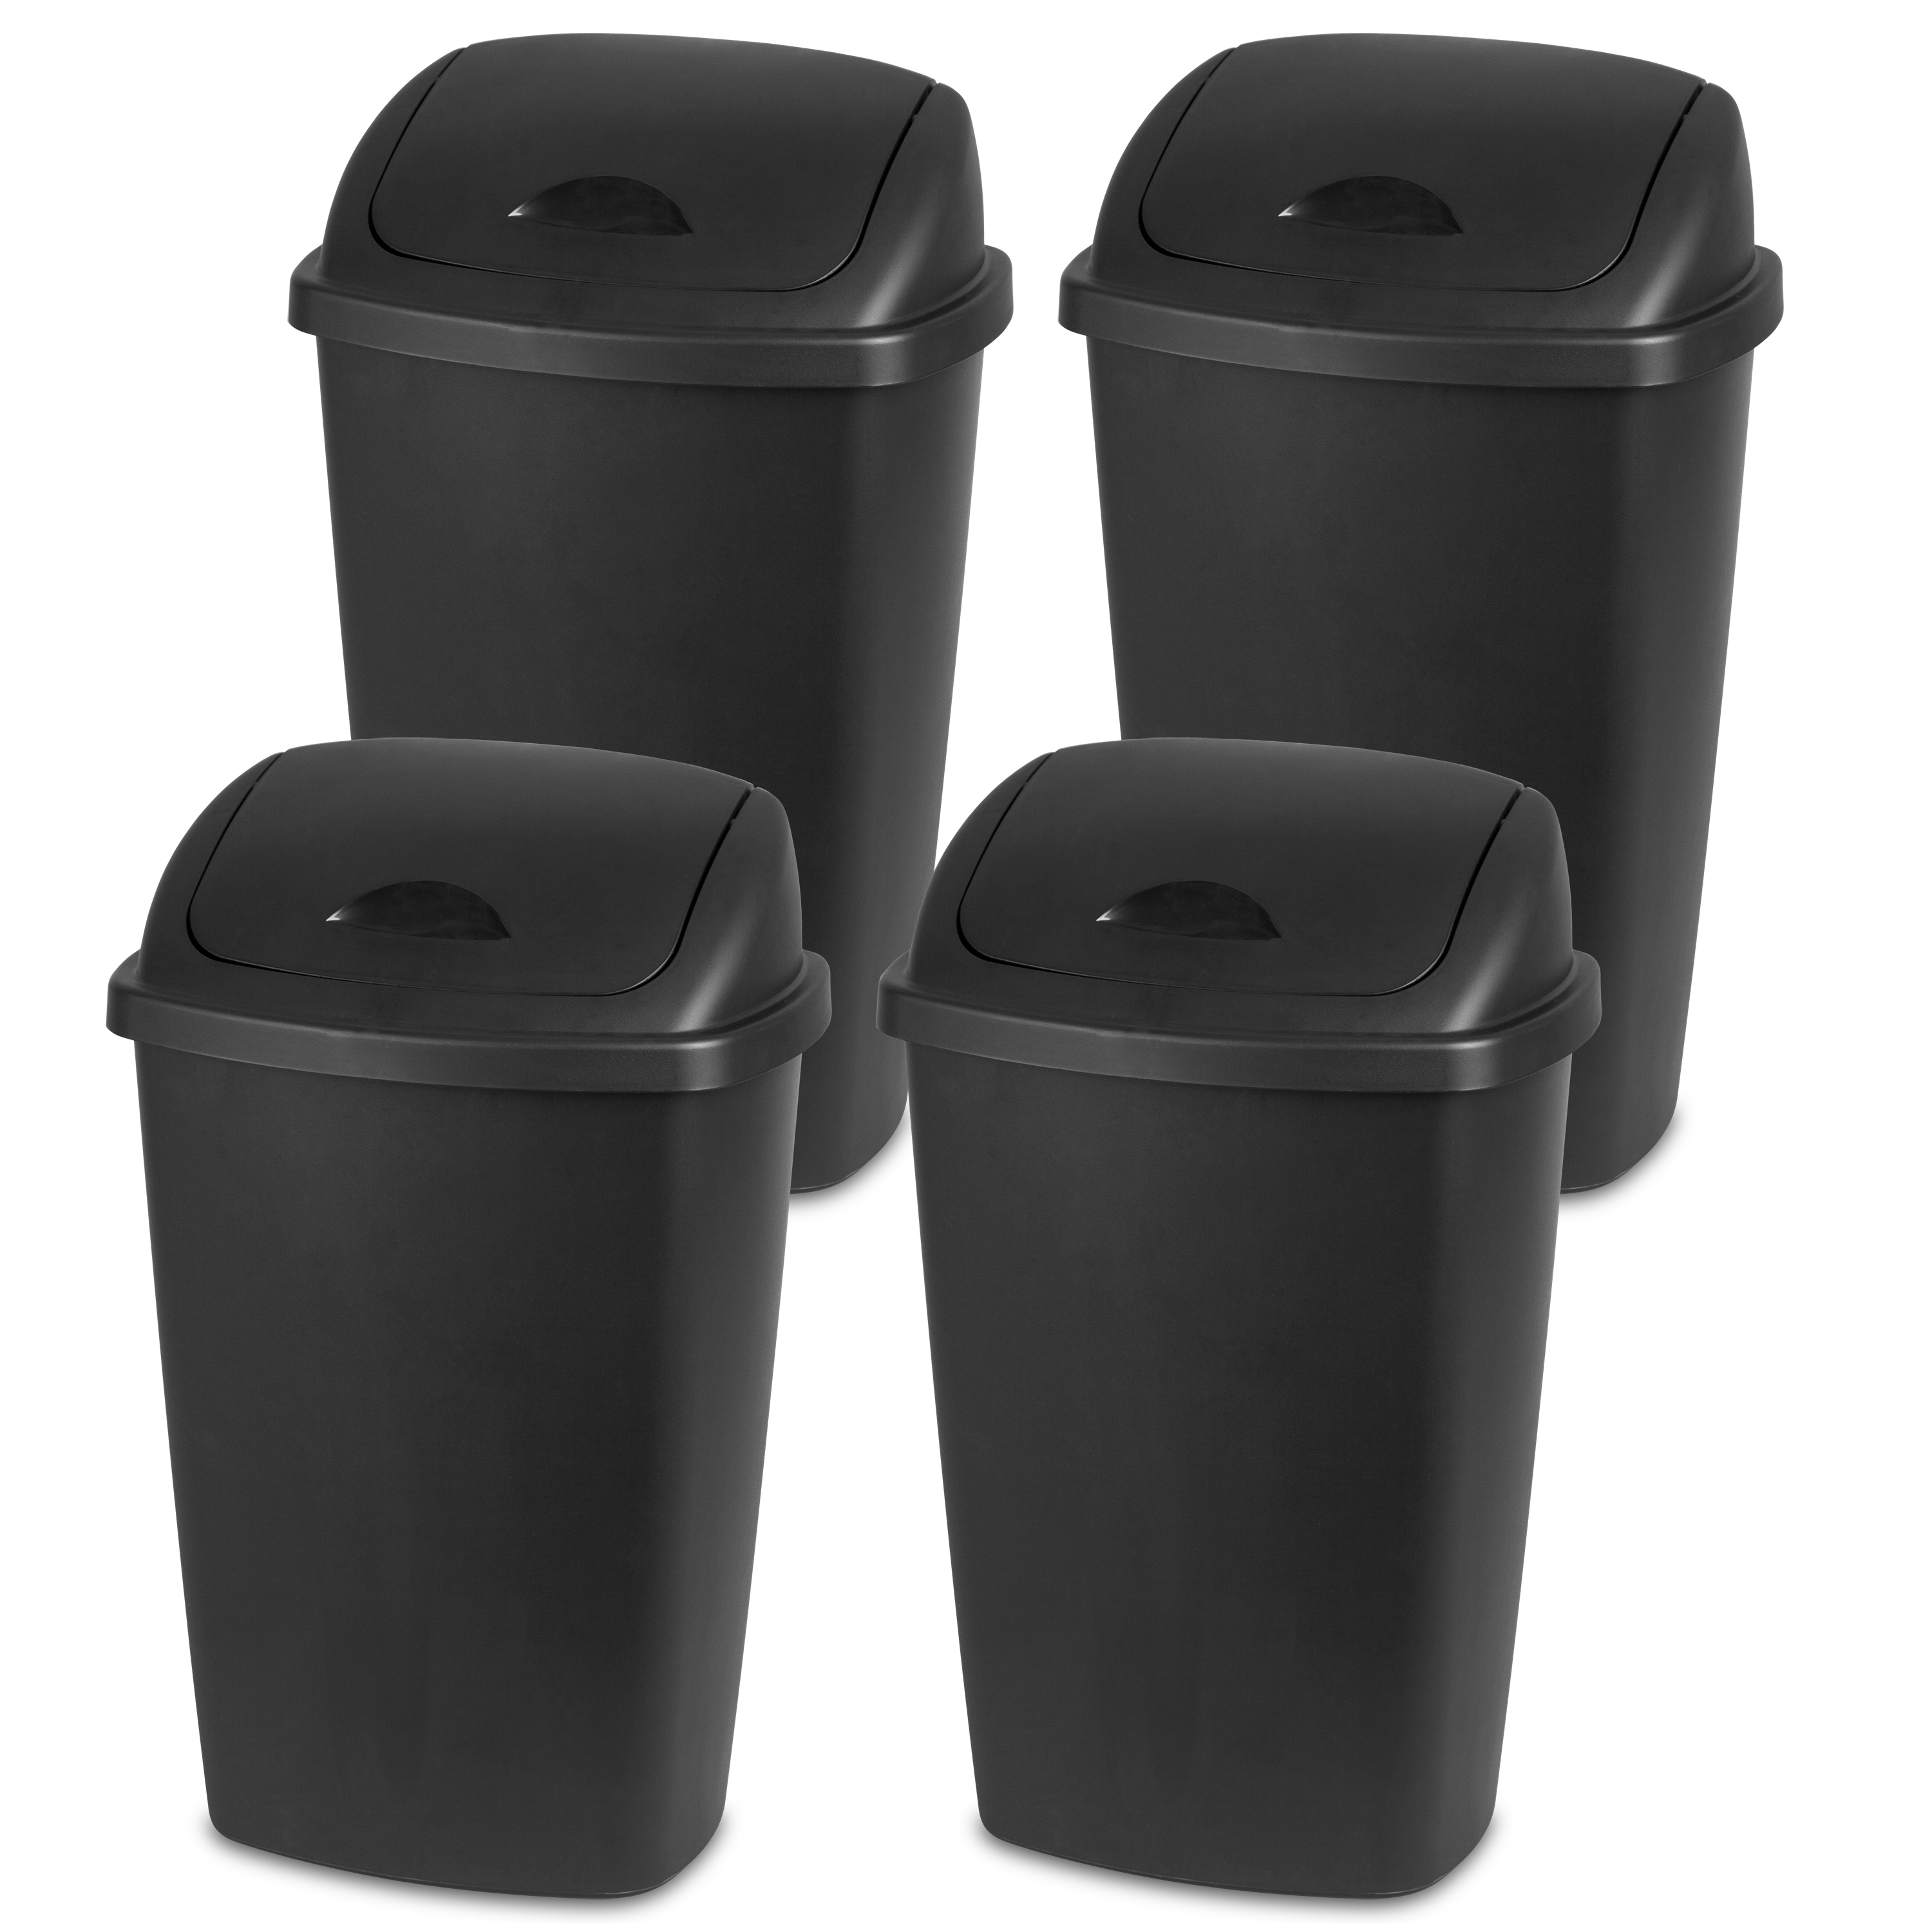 Sterilite 13.2 Gallon Swingtop Wastebasket- Multiple Colors (Available in Case of 4 or Single Unit) by Sterilite